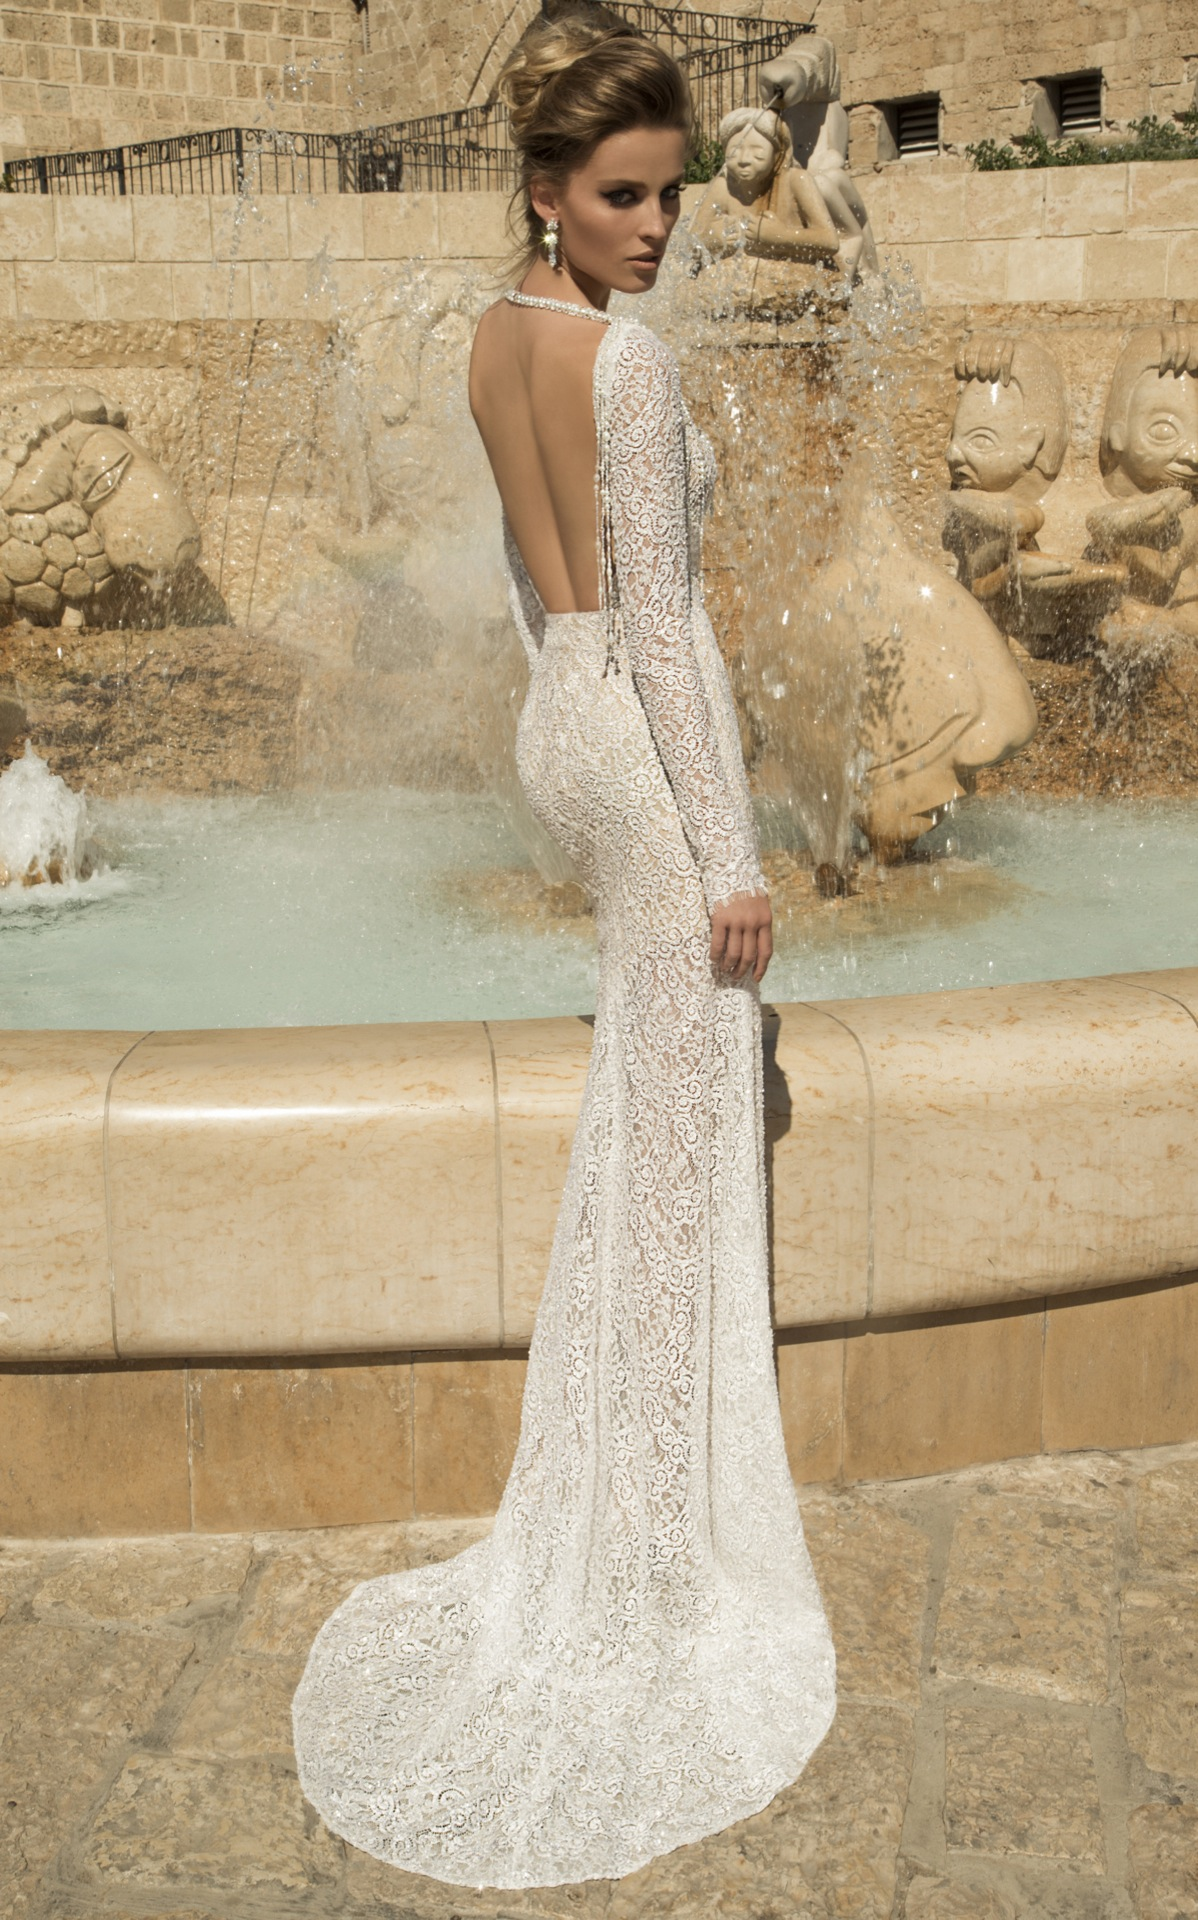 12 beautiful backless wedding dresses gowns backless wedding dress junglespirit Gallery